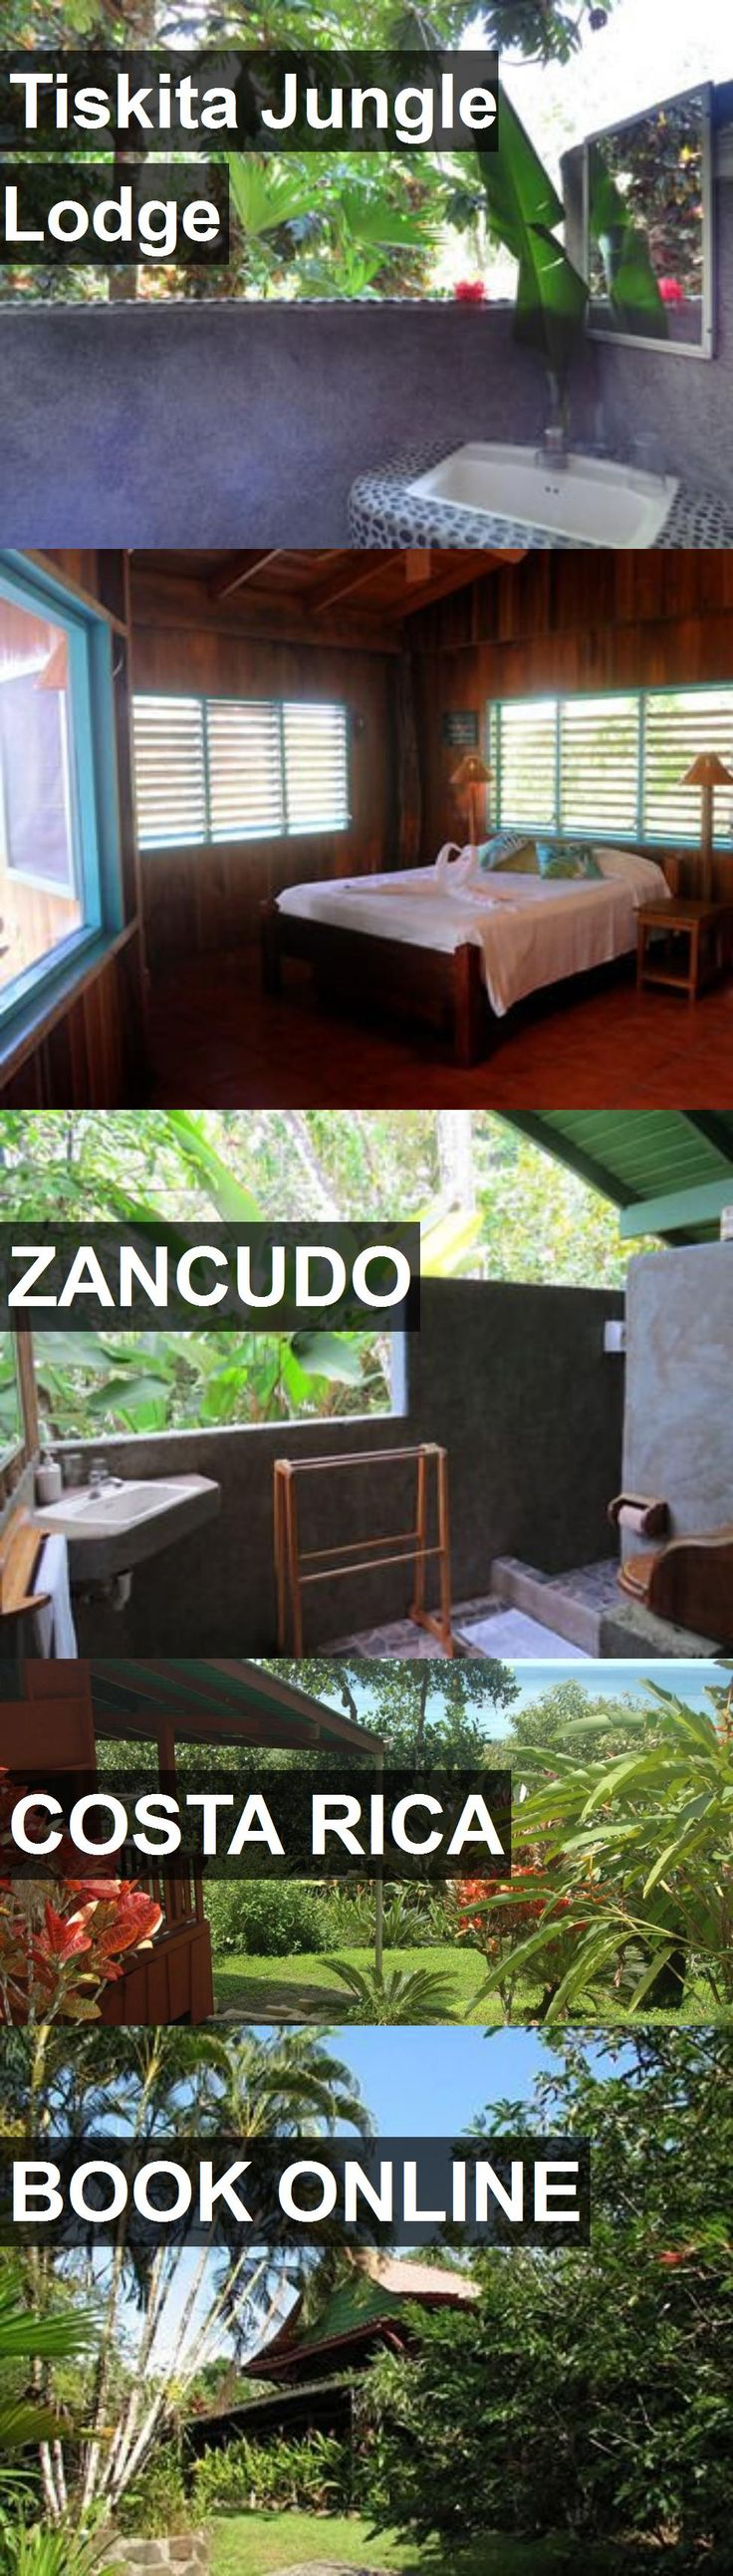 Hotel Tiskita Jungle Lodge in Zancudo, Costa Rica. For more information, photos, reviews and best prices please follow the link. #CostaRica #Zancudo #travel #vacation #hotel